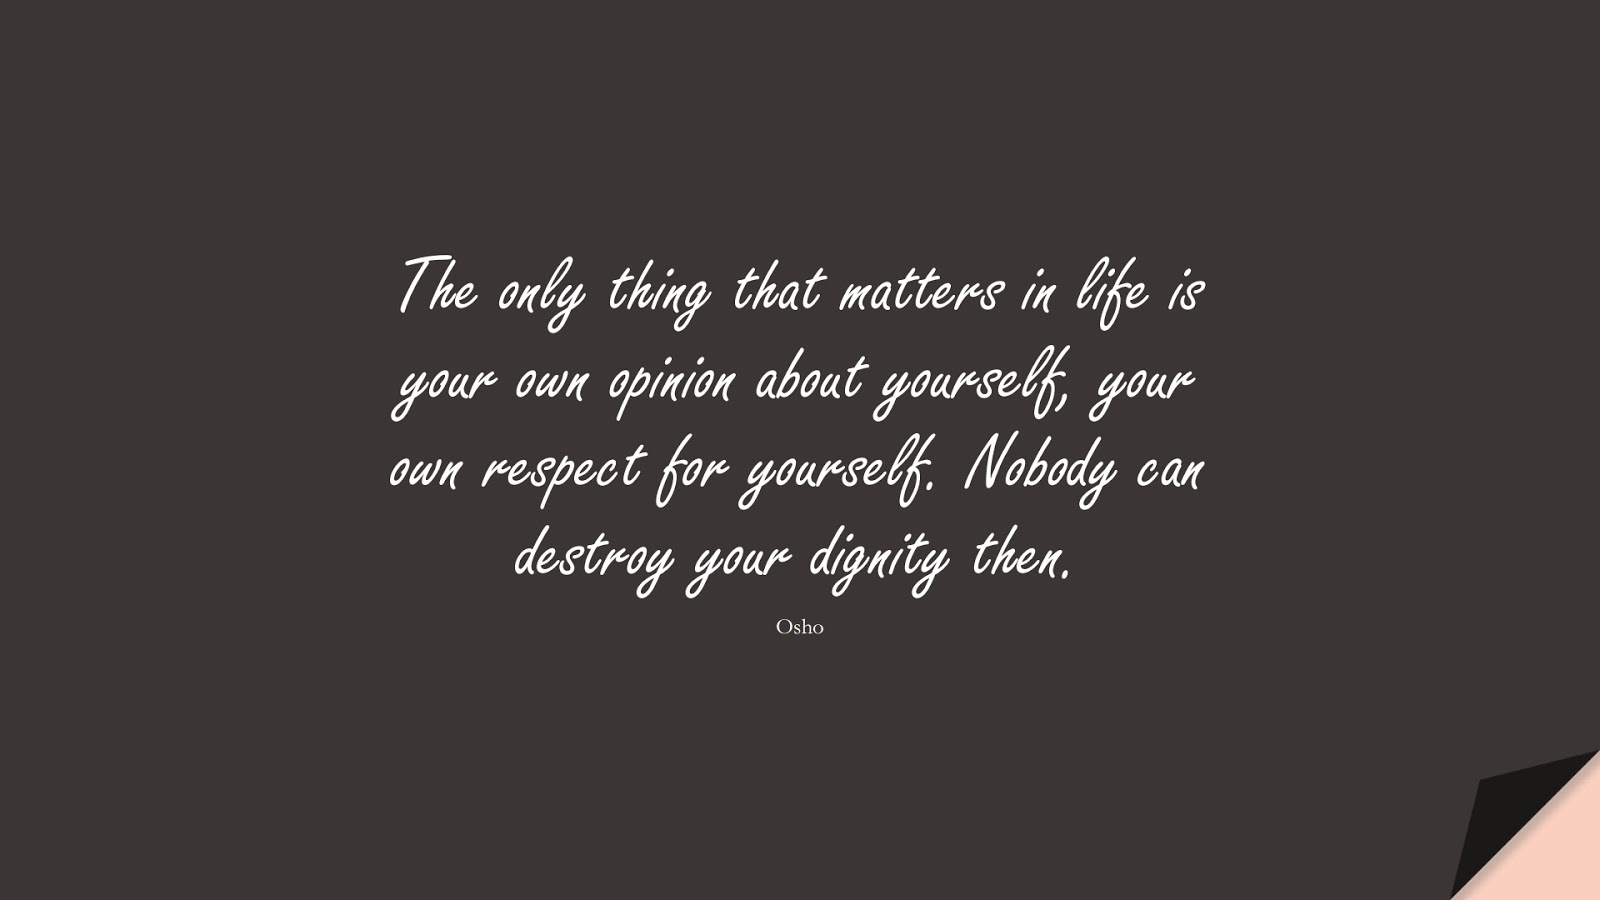 The only thing that matters in life is your own opinion about yourself, your own respect for yourself. Nobody can destroy your dignity then. (Osho);  #LoveYourselfQuotes